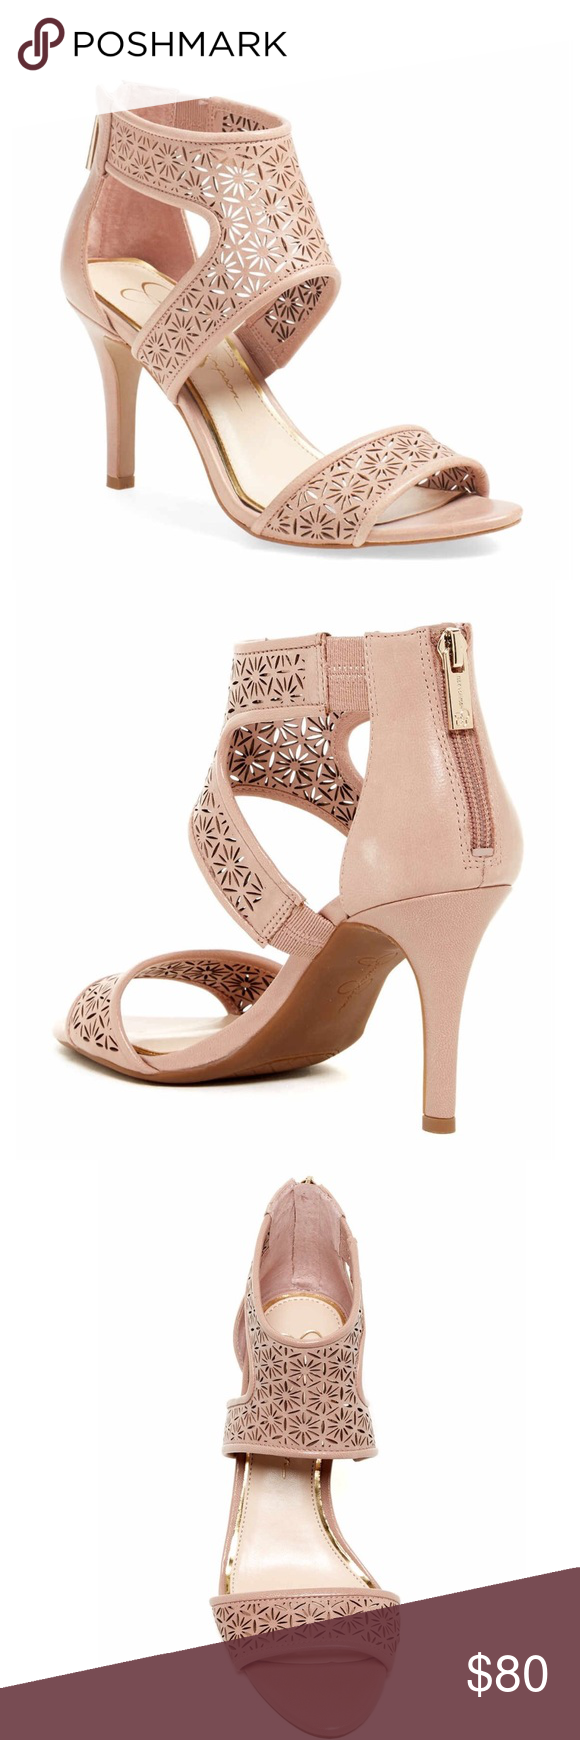 JESSICA SIMPSON Laser Cut Heel Sandal Beautiful Laser cut heel sandal in nude blush by Jessica Simpson. Back zip closure, 3.25 inch heel. Leather upper, manmade sole. Brand new, in box. Size 8.5. WILL POST PIC OF ACTUAL PAIR SOON! Jessica Simpson Shoes Heels